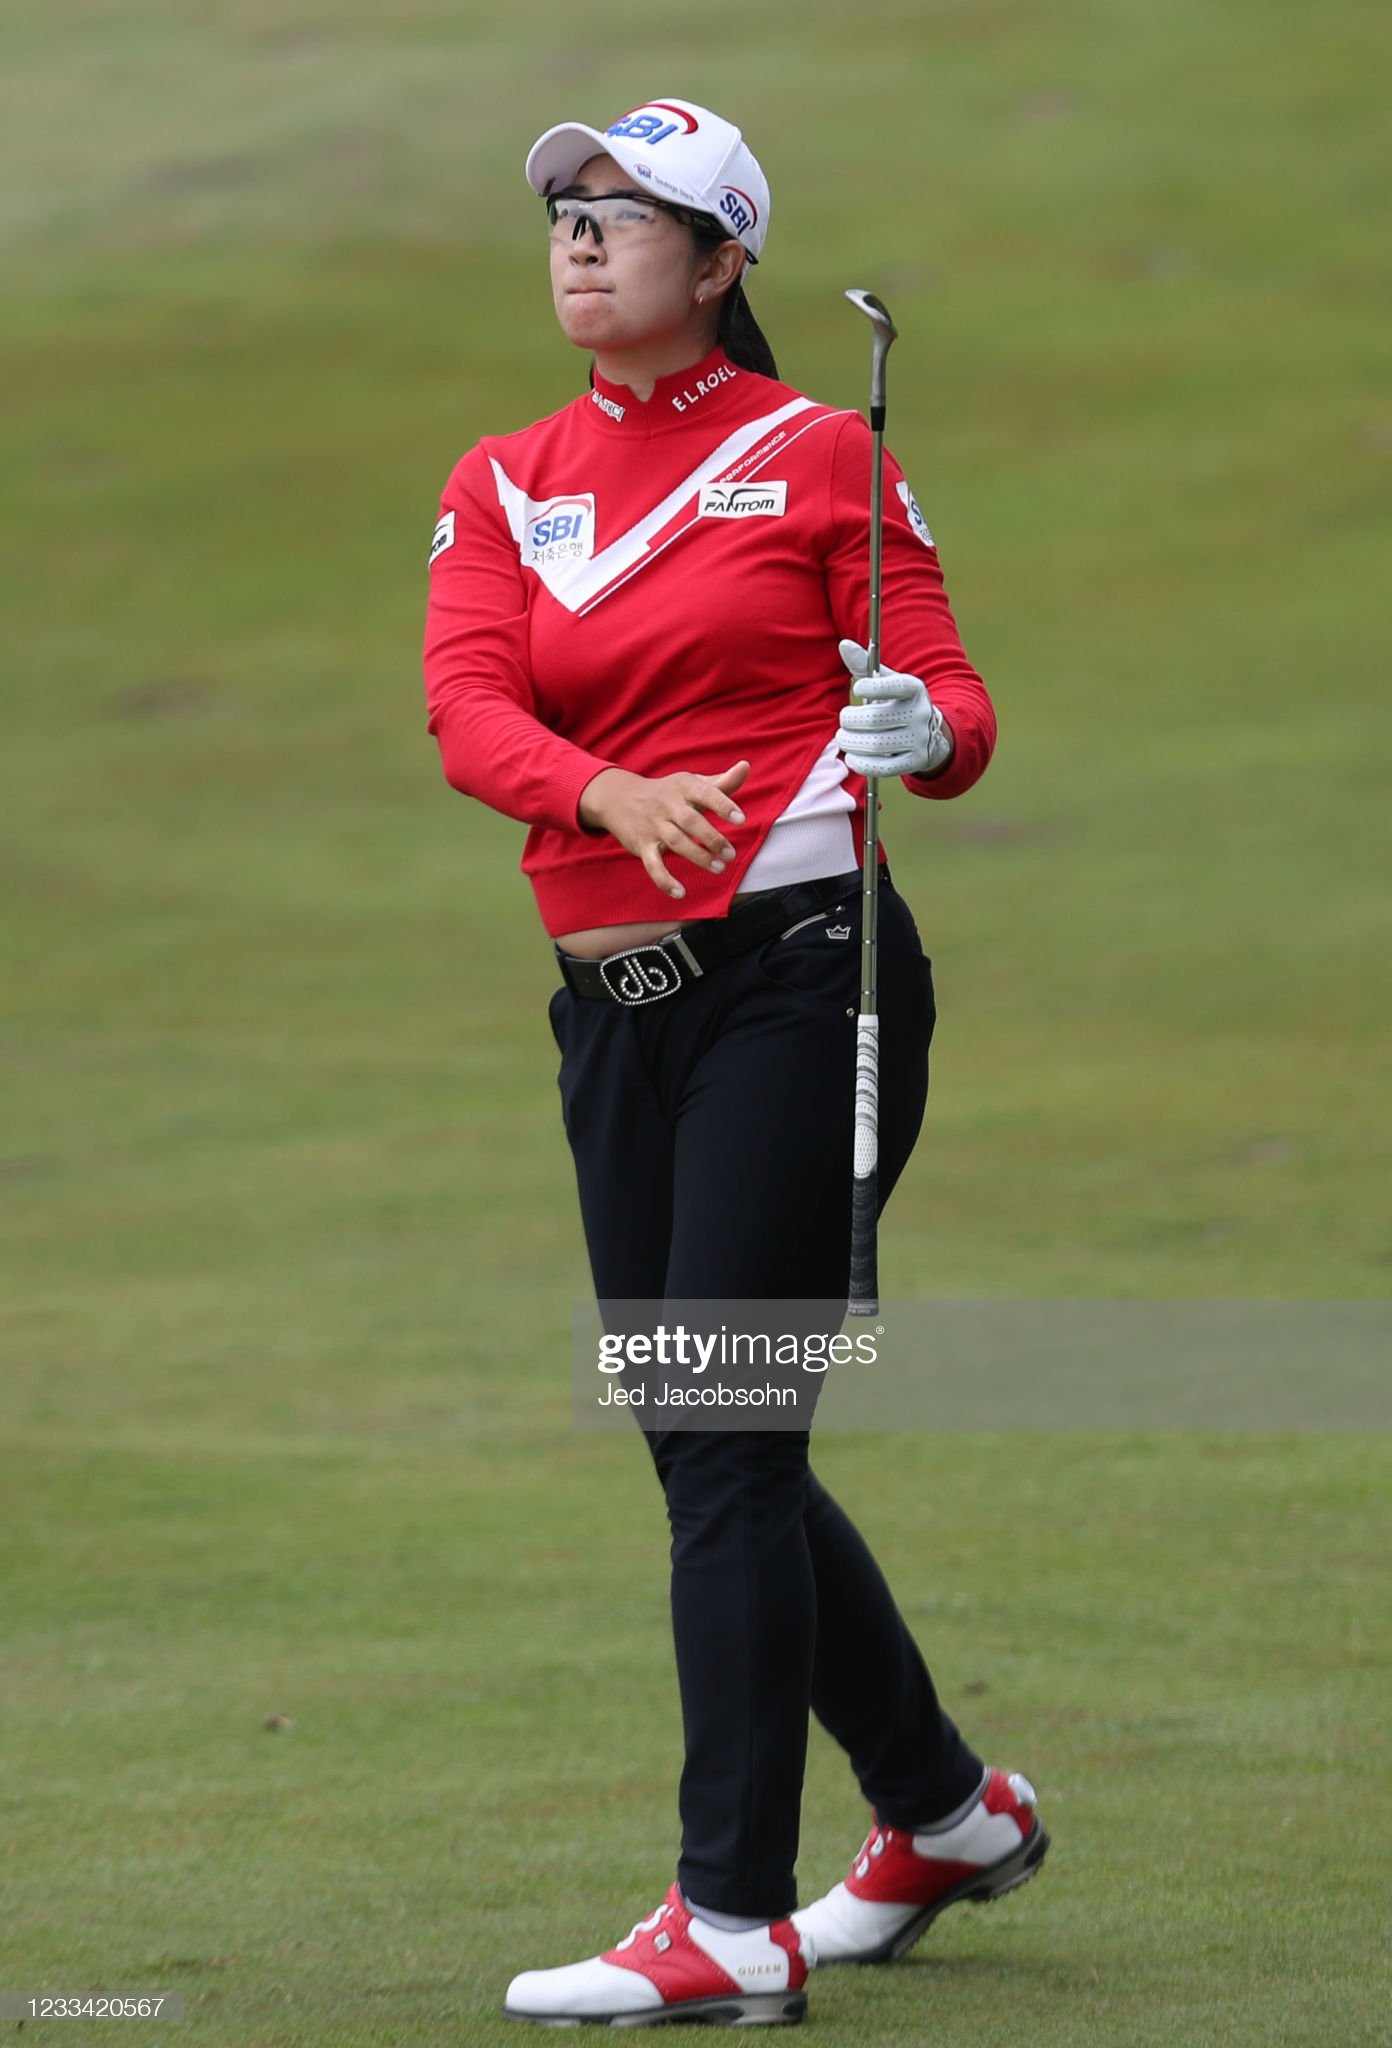 https://media.gettyimages.com/photos/lim-kim-of-south-korea-hits-a-shot-on-the-8th-hole-during-the-round-picture-id1233420567?s=2048x2048